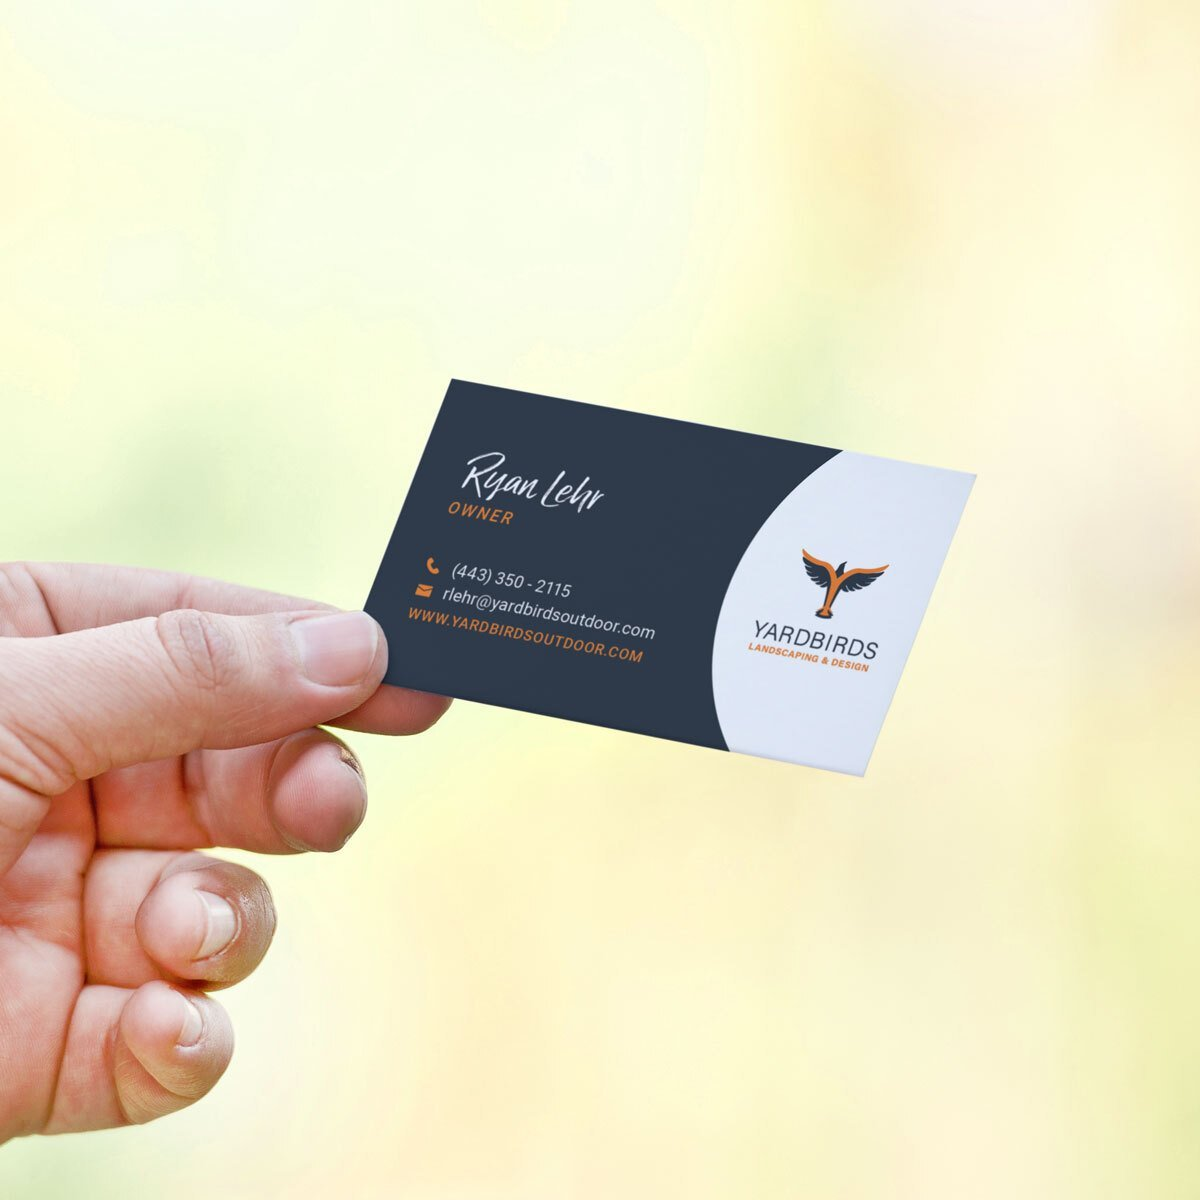 Yardbirds Business Cards Design by BrandSwan, a graphic design company